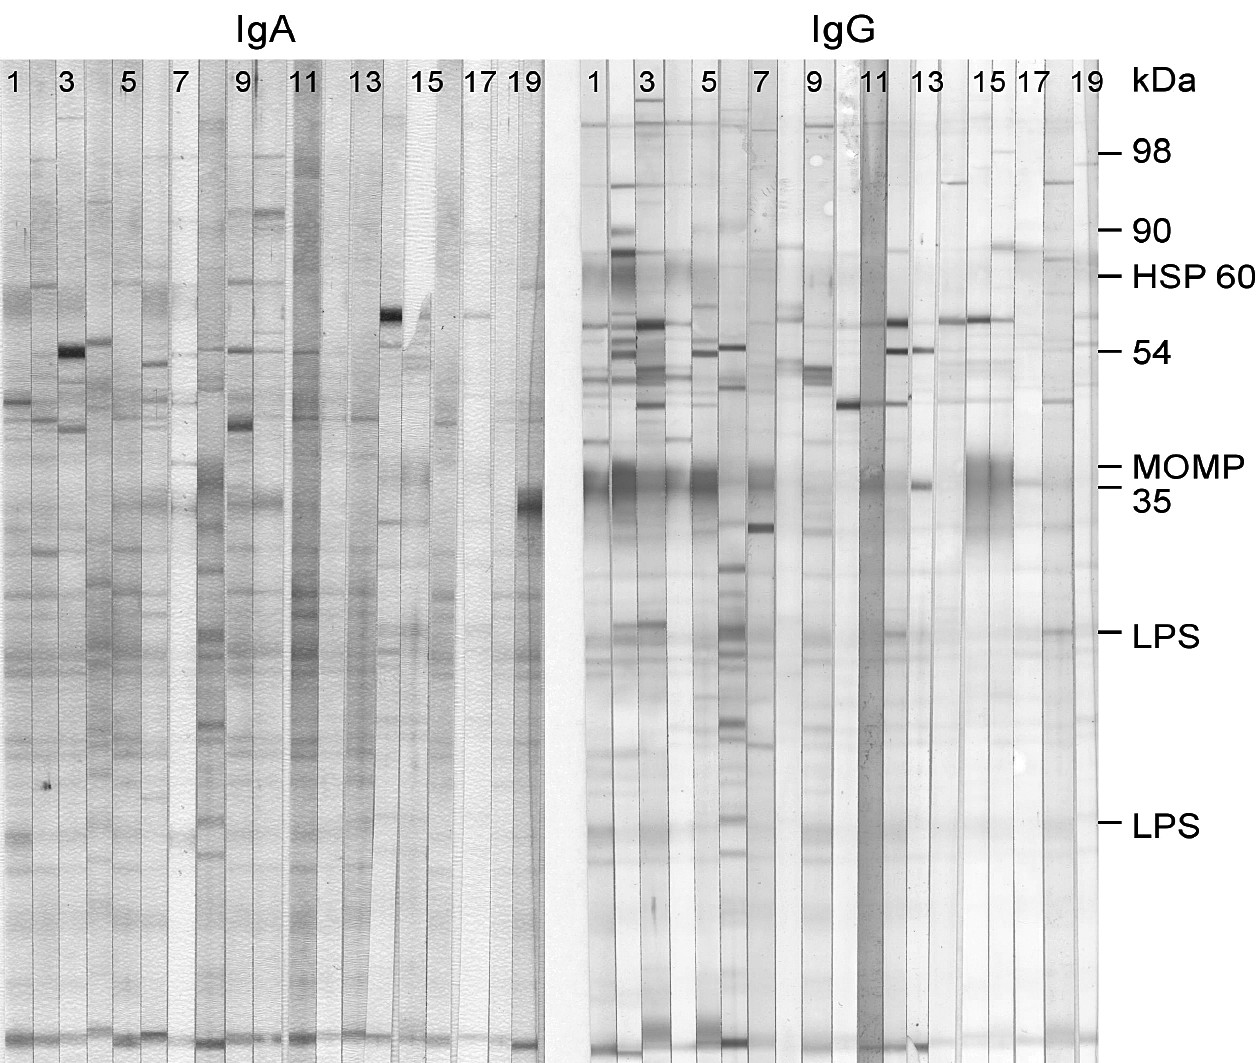 Fig. 1. Typical IB protein profiles with C. pneumoniae IgA and IgG, respectively, in sera of CVD patients (lanes No 1-16 correspond to the sera of cardiovascular patients, lanes 17-19 to control sera).